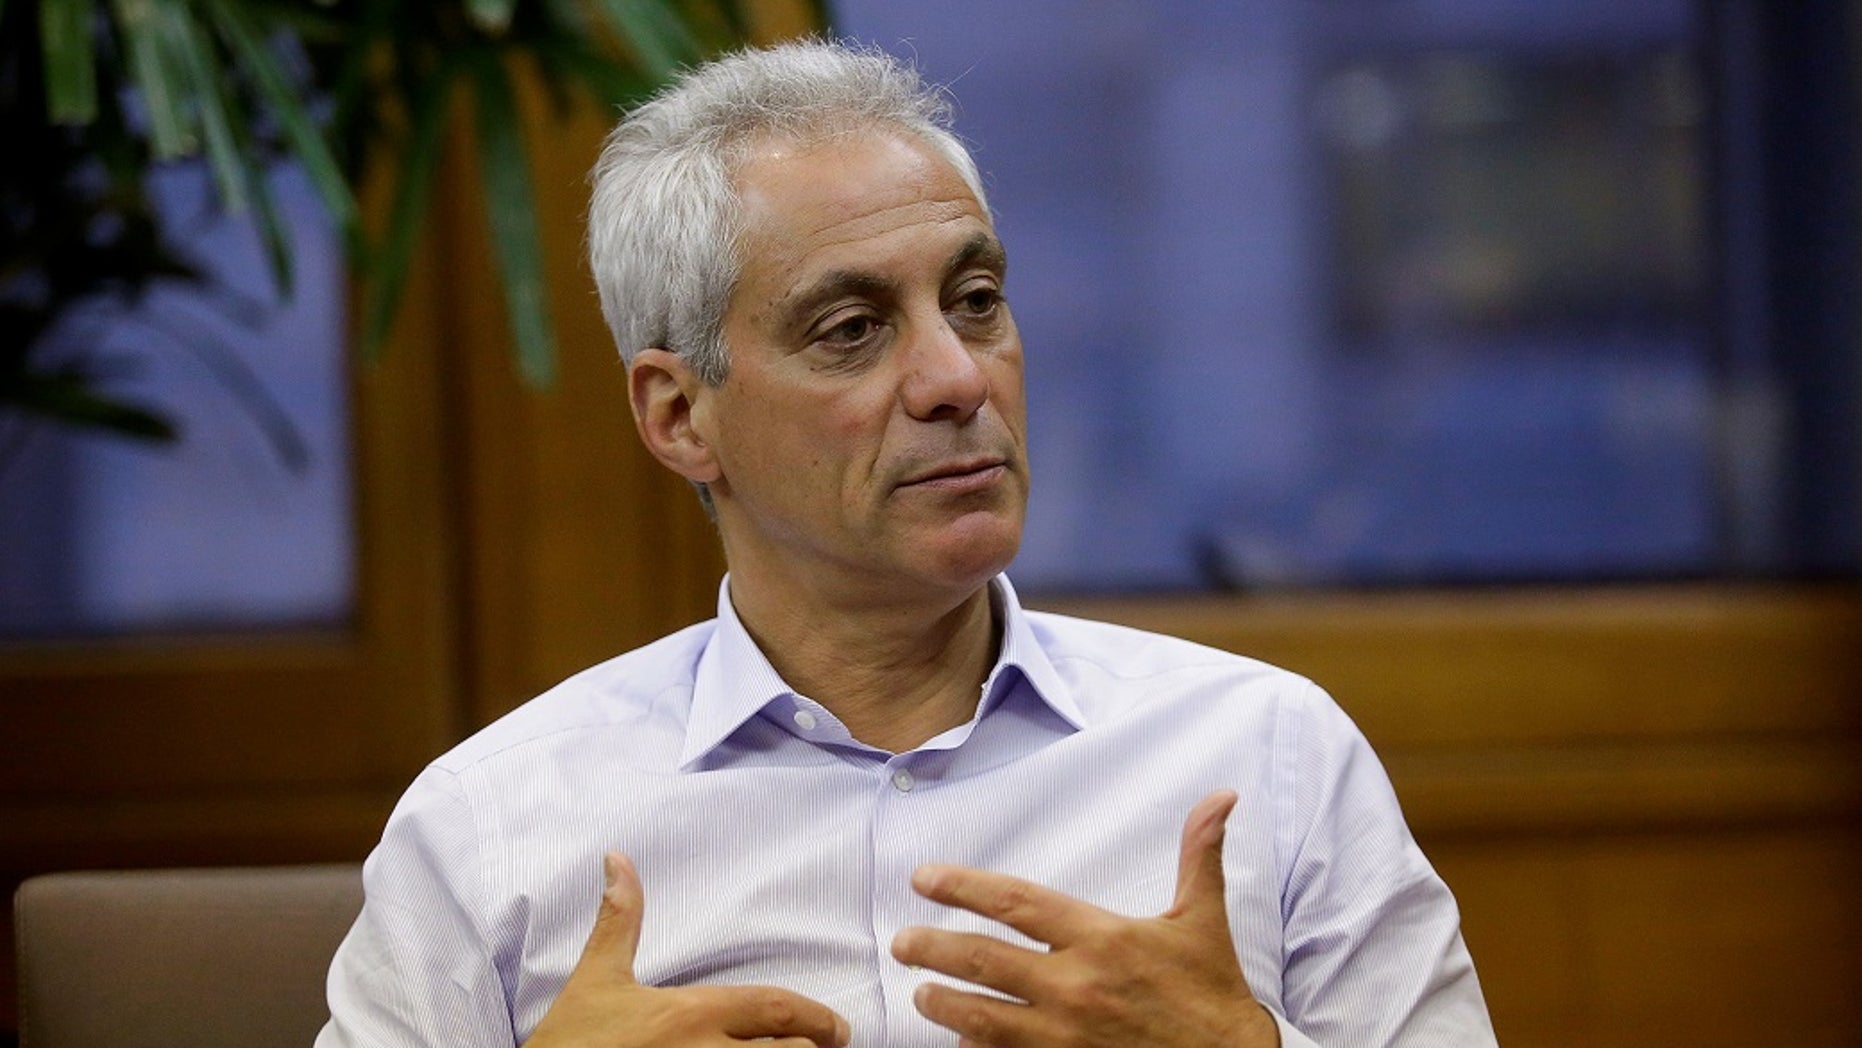 Rahm Emanuel, who was a three-term congressman from Illinois before spending two terms in Chicago's mayoral office, appears to be diving back into Washington politics after electing not to run for a third term in office. (Reuters)